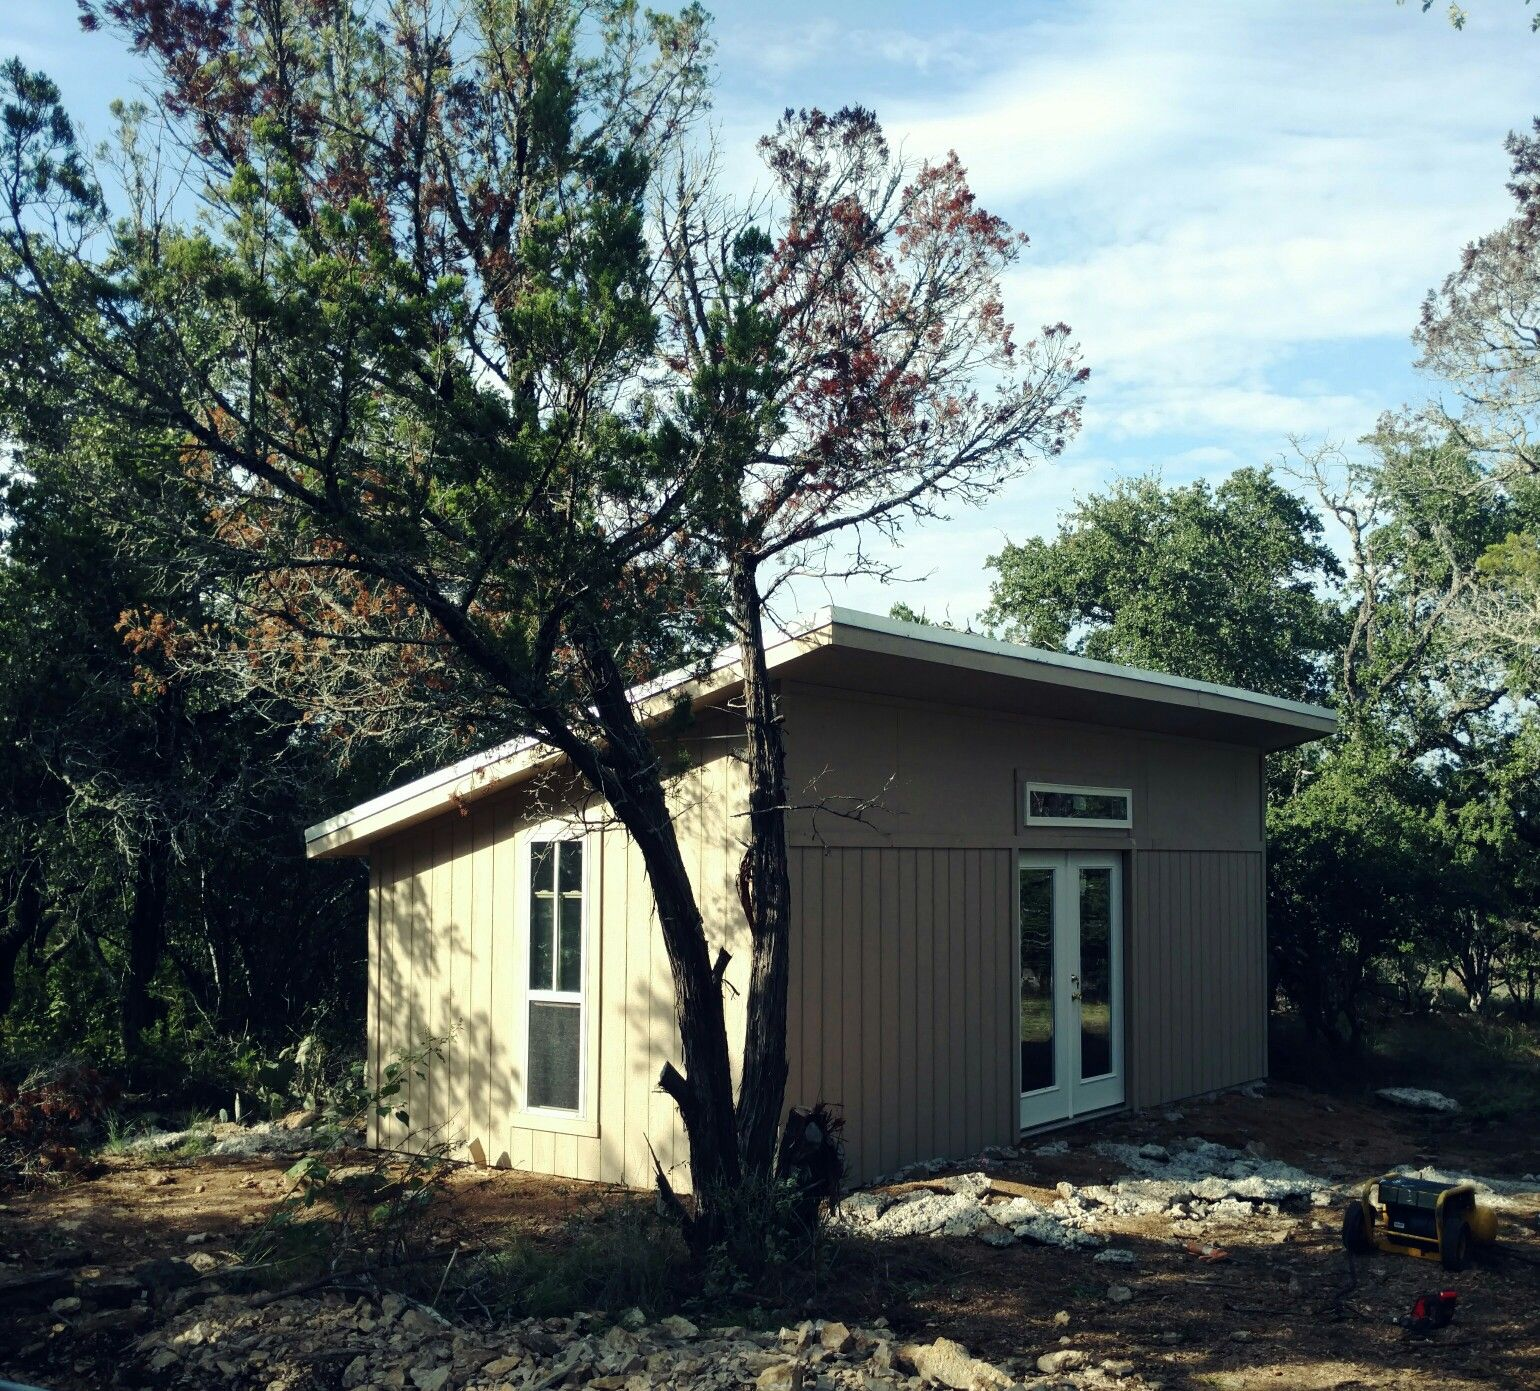 This is the tuff shed premier pro studio that we had installed on a 12x24 slab